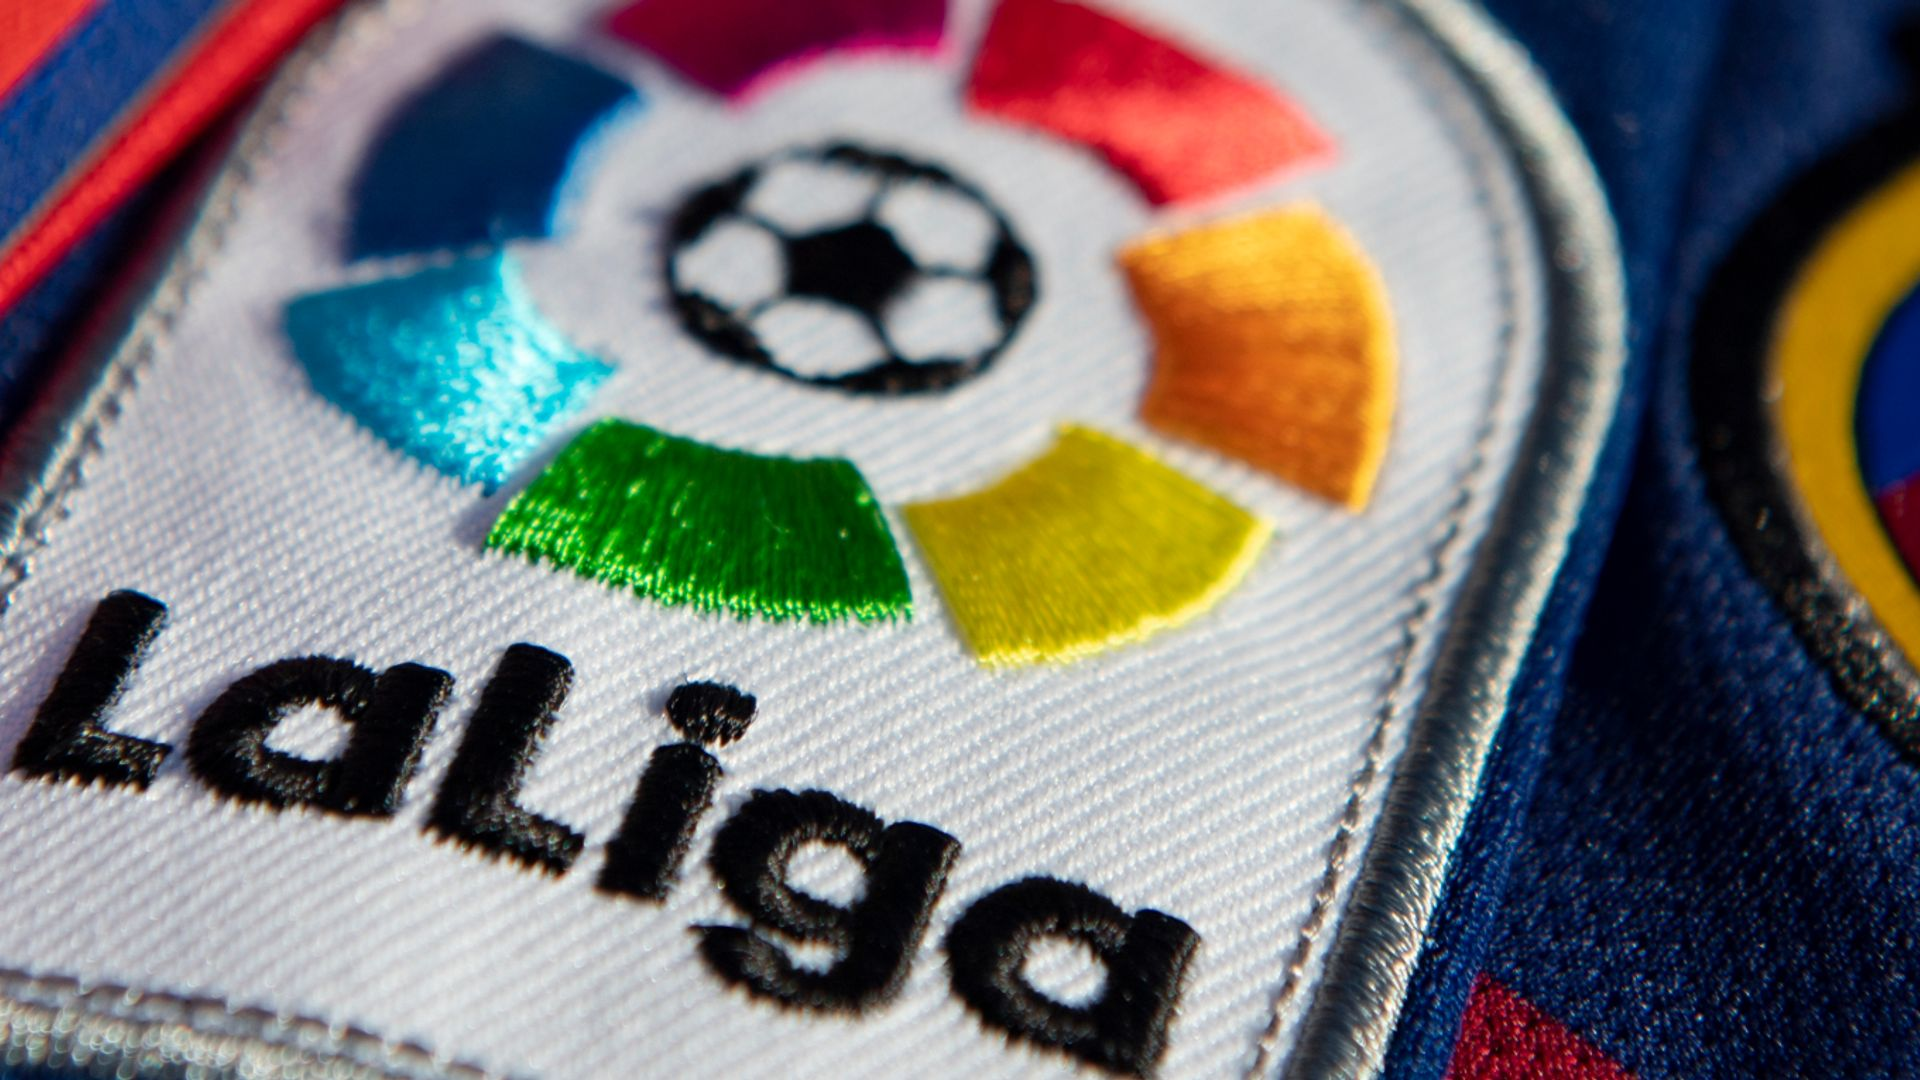 Opt-out offered as LaLiga clubs approve investment